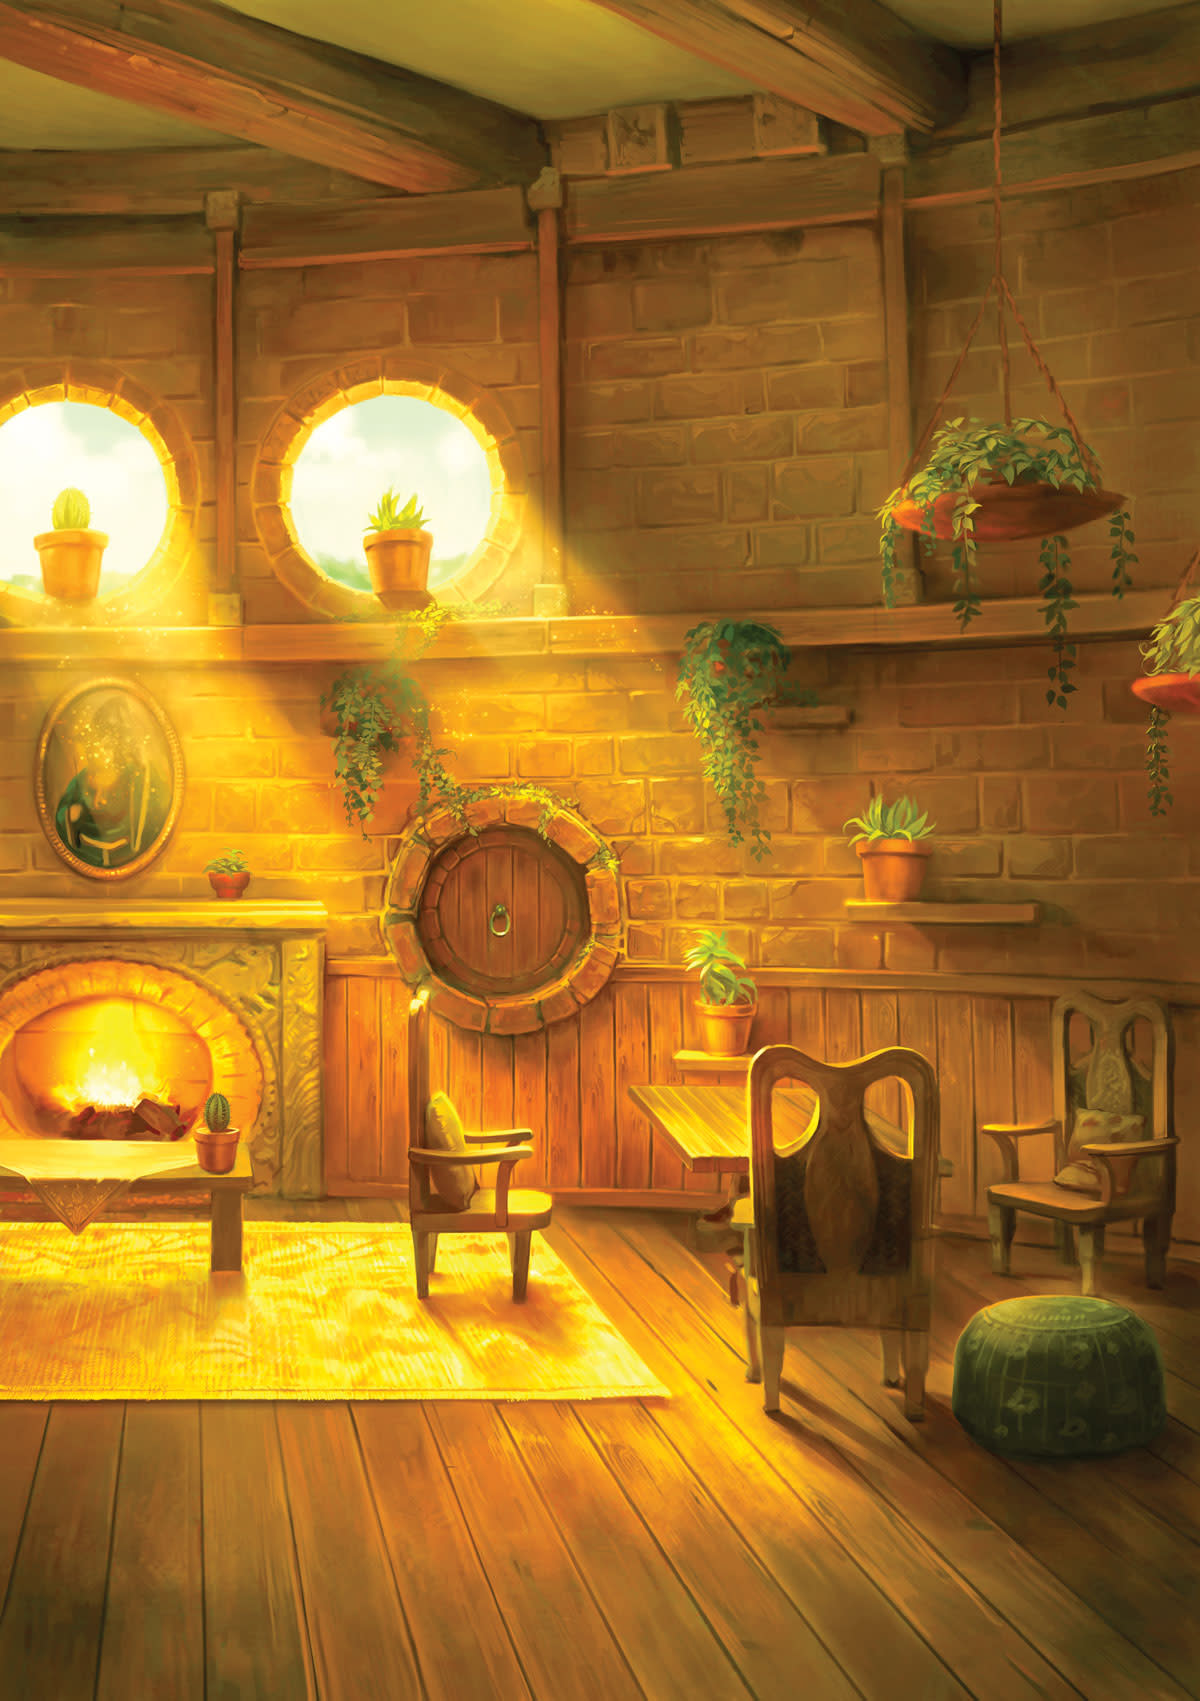 Picture of the Hufflepuff Common Room from Pottermore